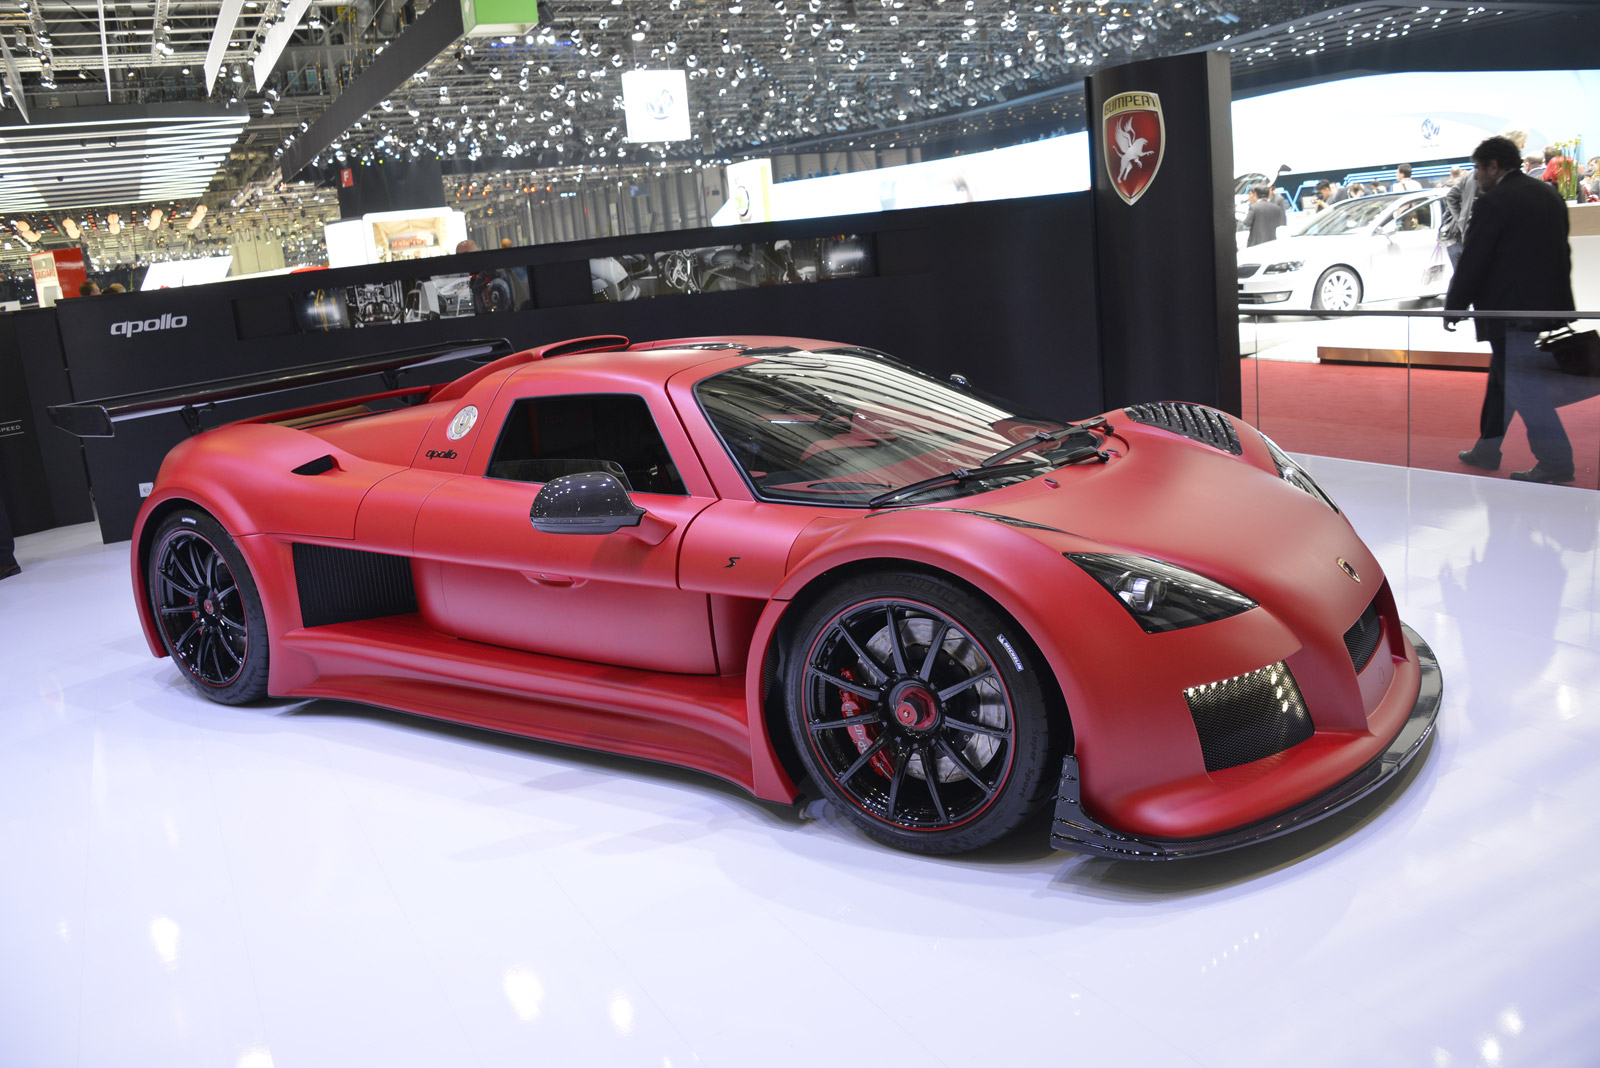 Gumpert May Finally Be Down For The Count - The count car show